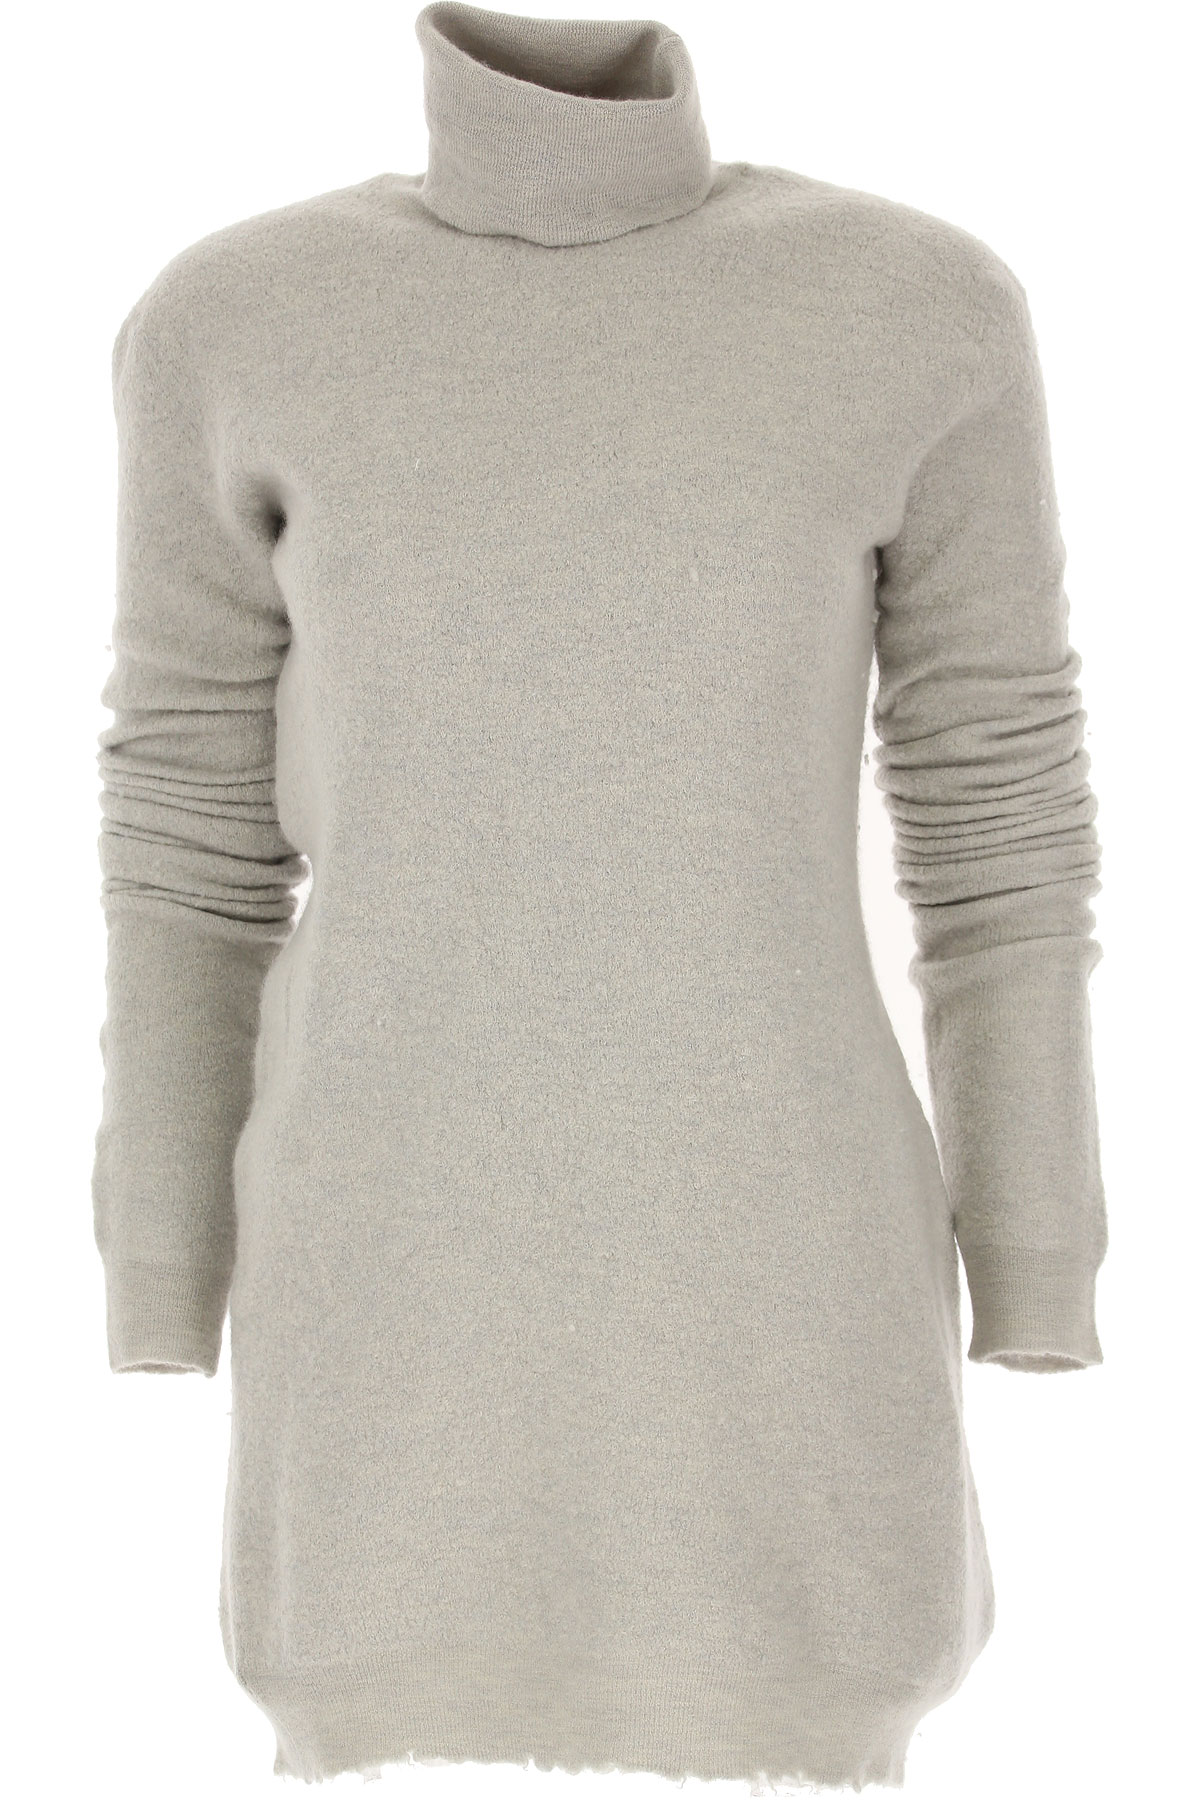 Image of Unravel Project Sweater for Women Jumper, Light Grey, Cashemere, 2017, 2 4 6